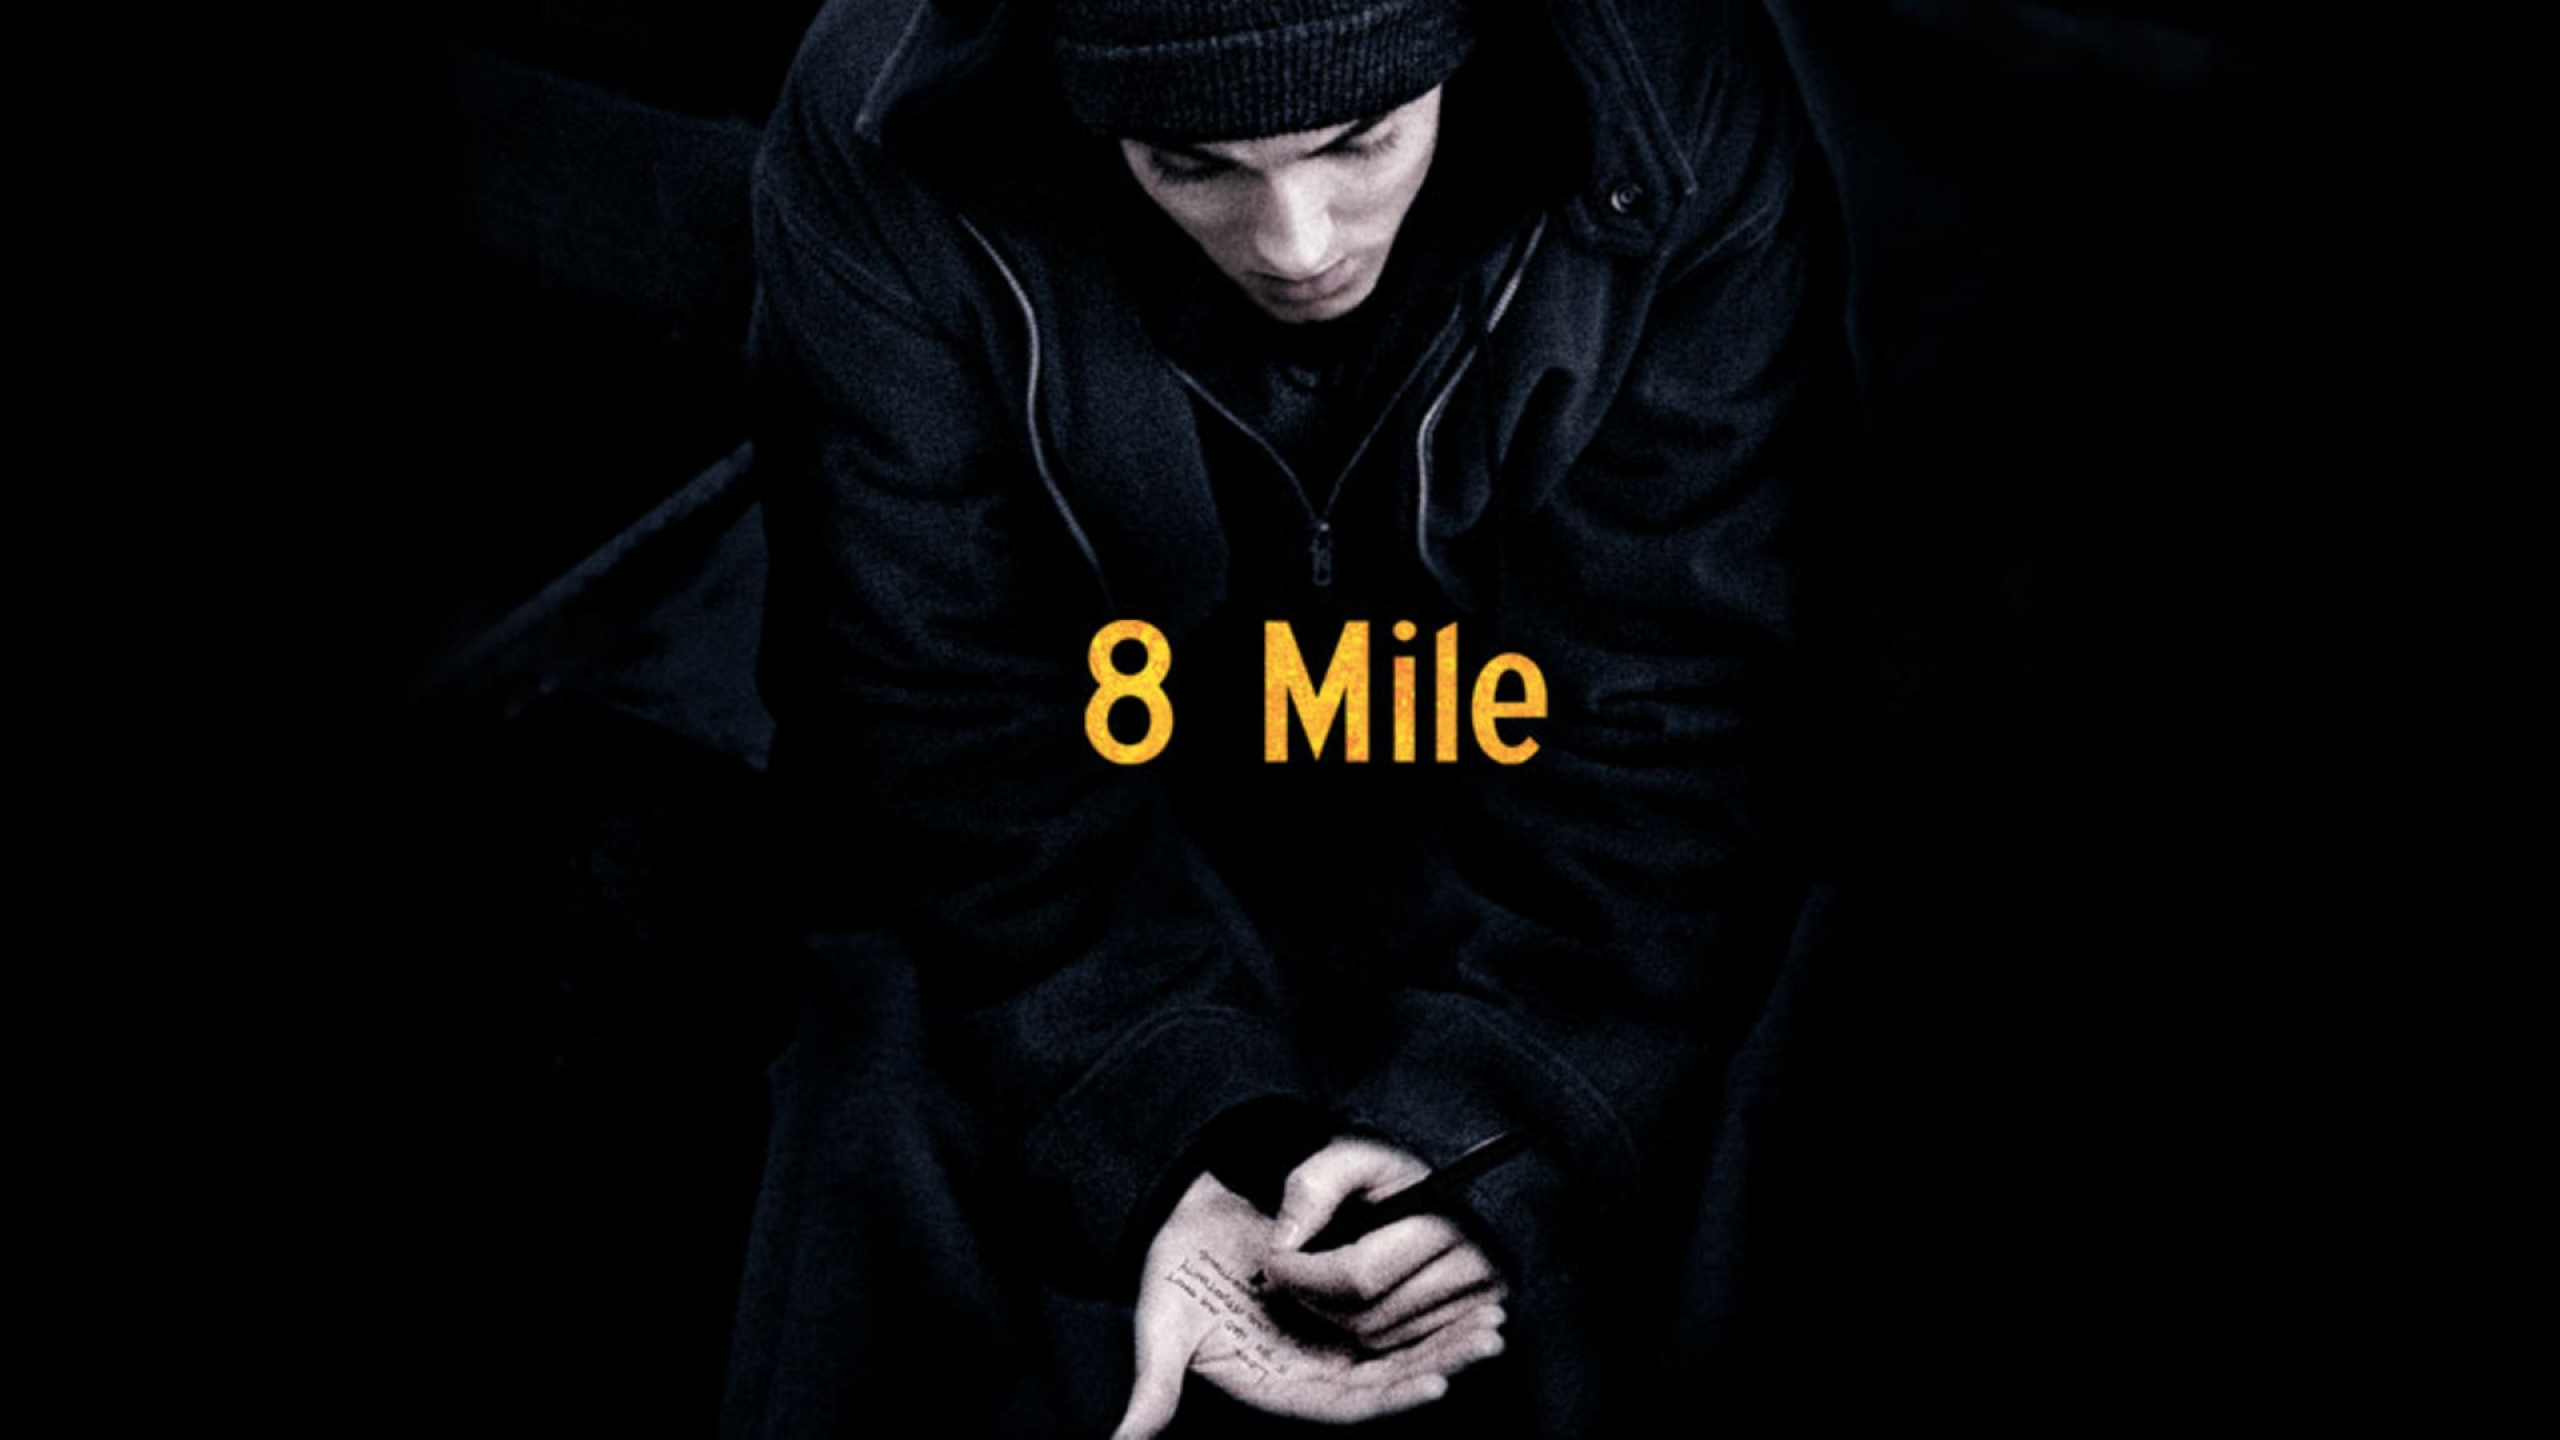 Eminem Wallpapers HD 8 mile